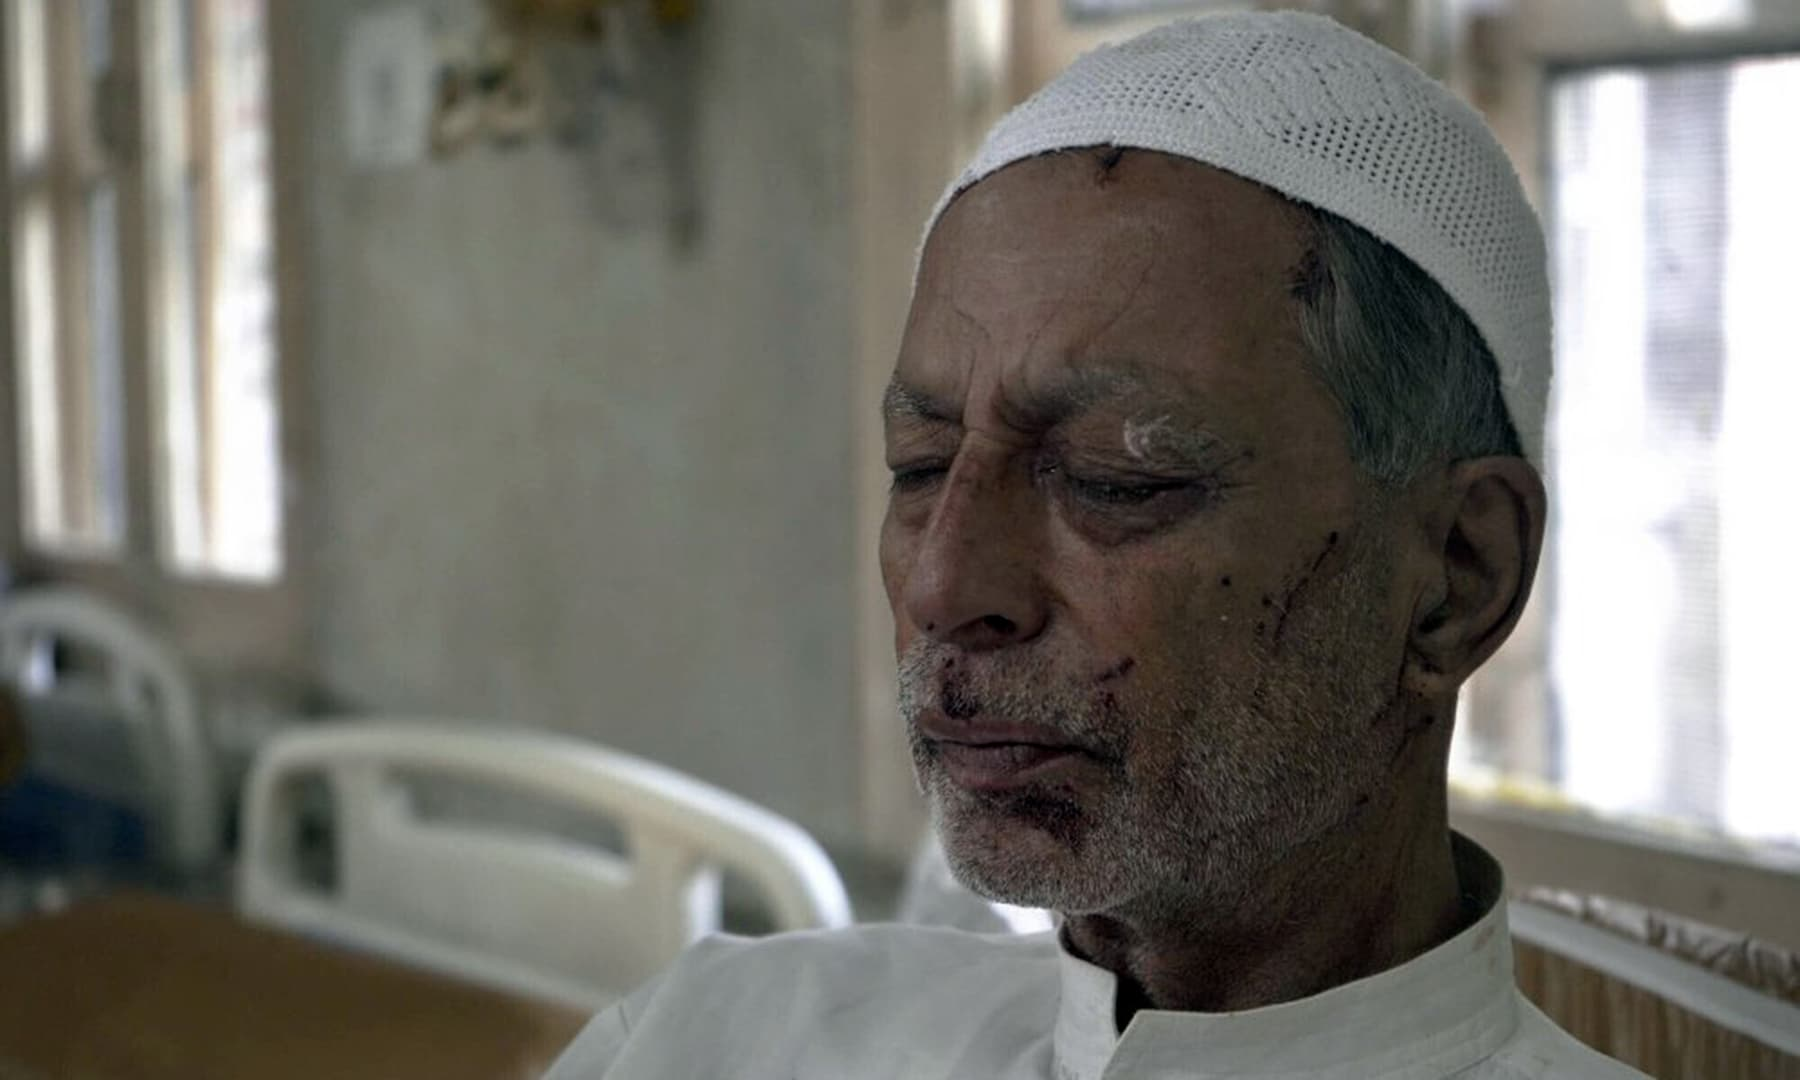 Mohammad Siddiq, 70, who was wounded a day before recovers inside a hospital in Srinagar on August 18. The elderly Kashmiri man says he was wounded when an Indian police man fired a pellet gun at him while returning home from a mosque, badly damaging his left eye. — AP